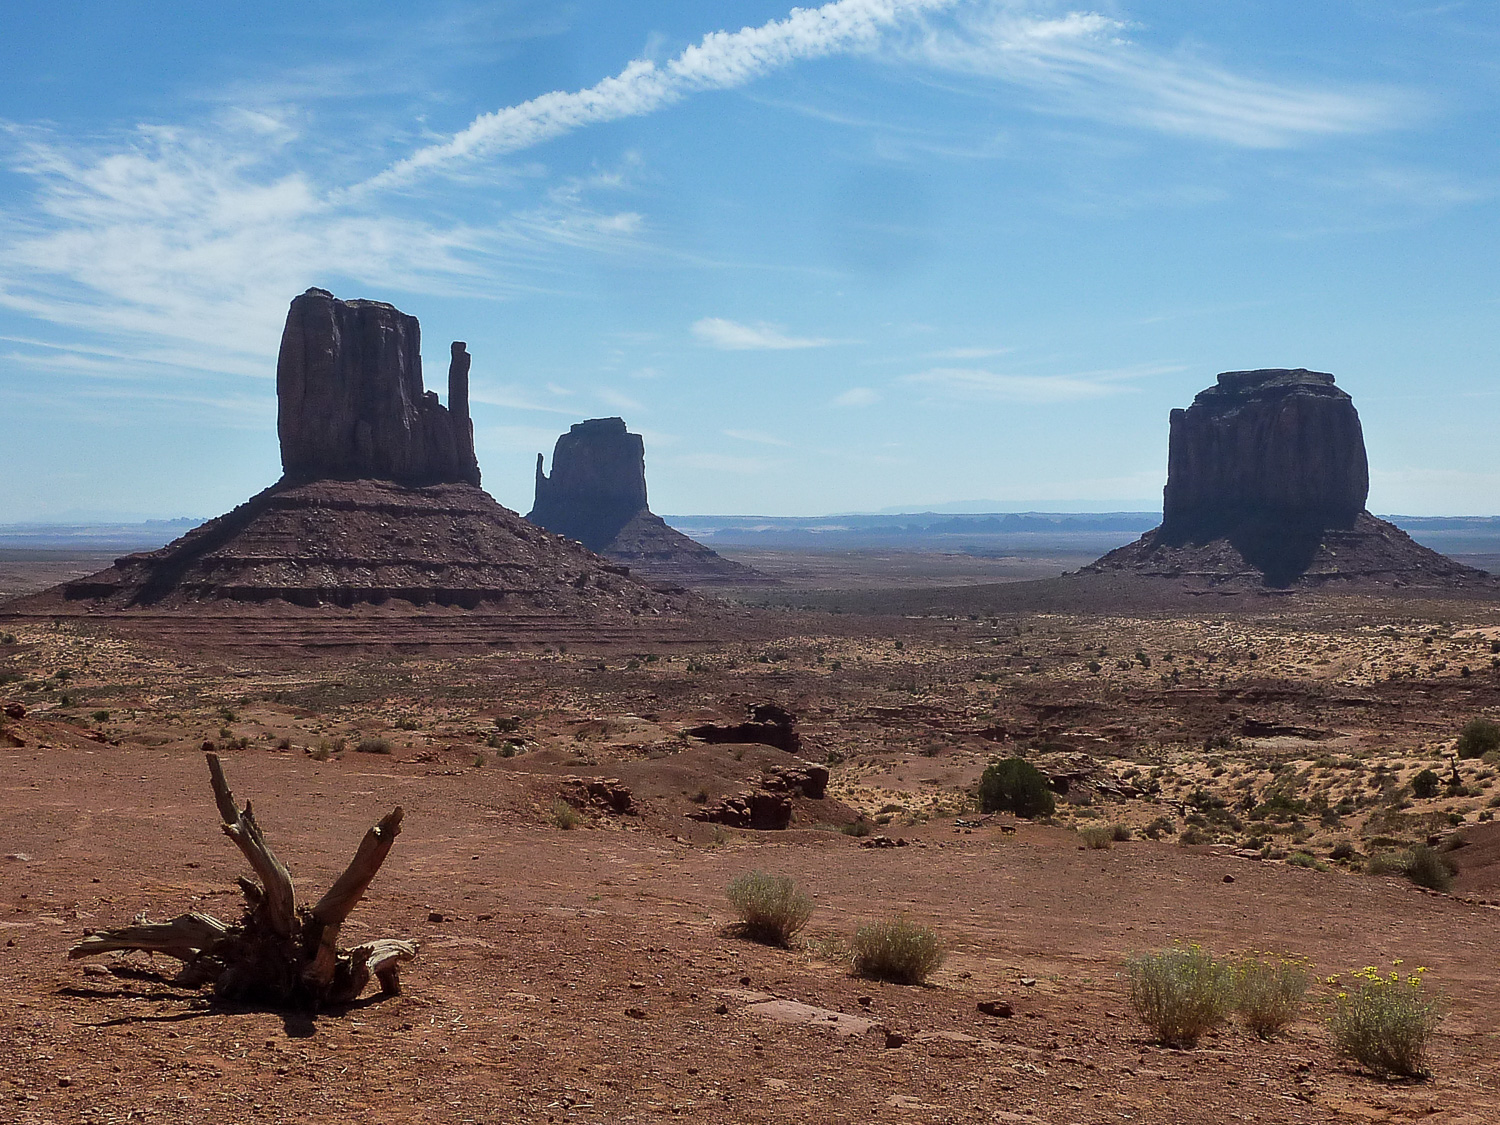 Les 3 buttes de Monument Valley